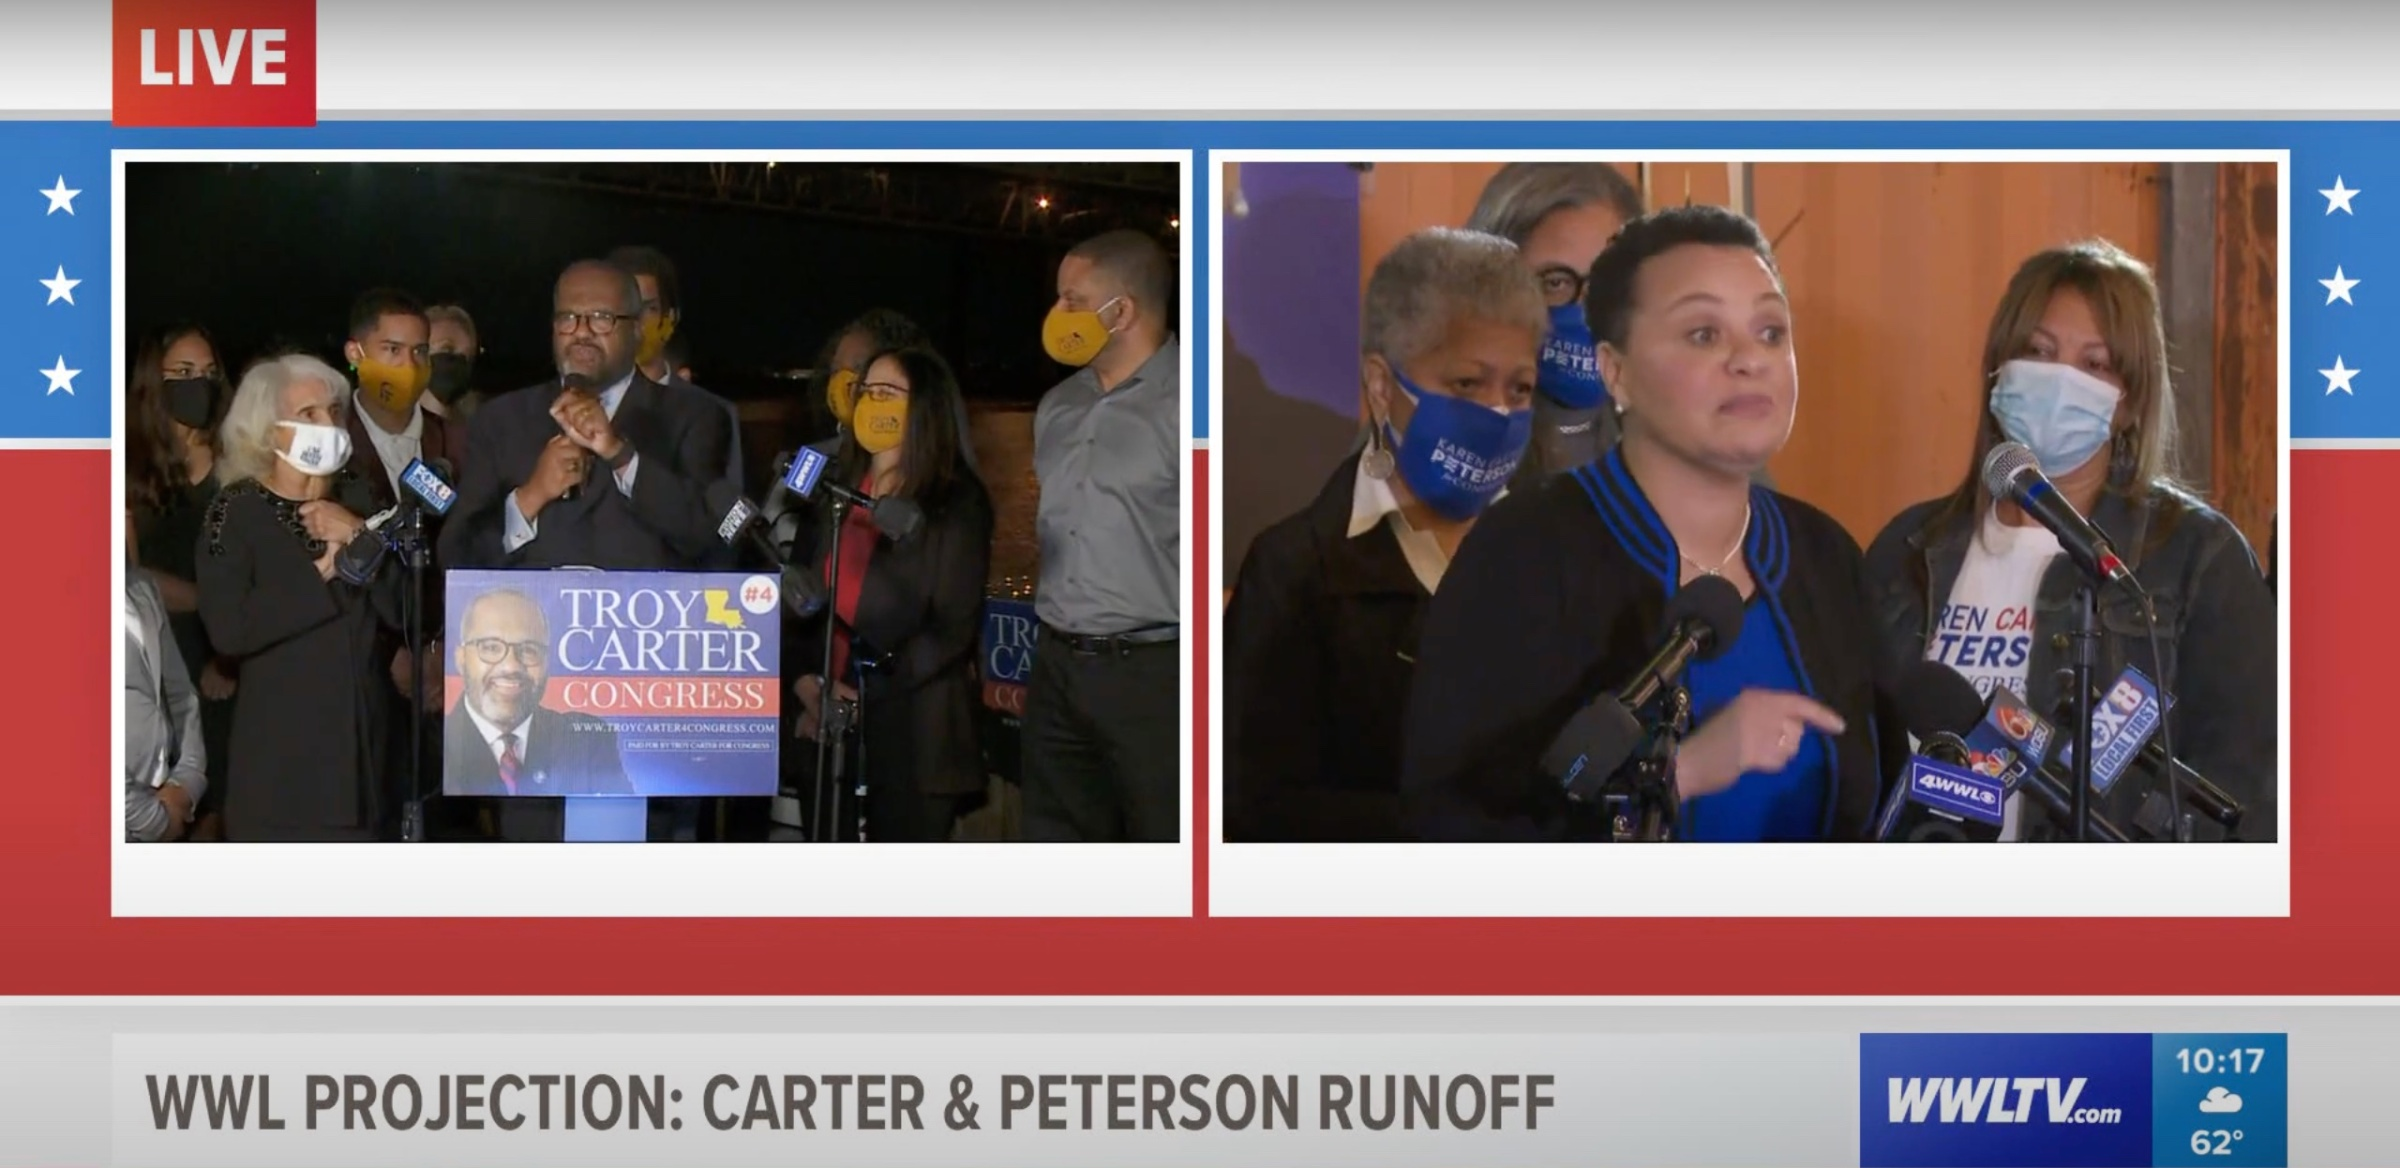 A video of candidate Troy Carter